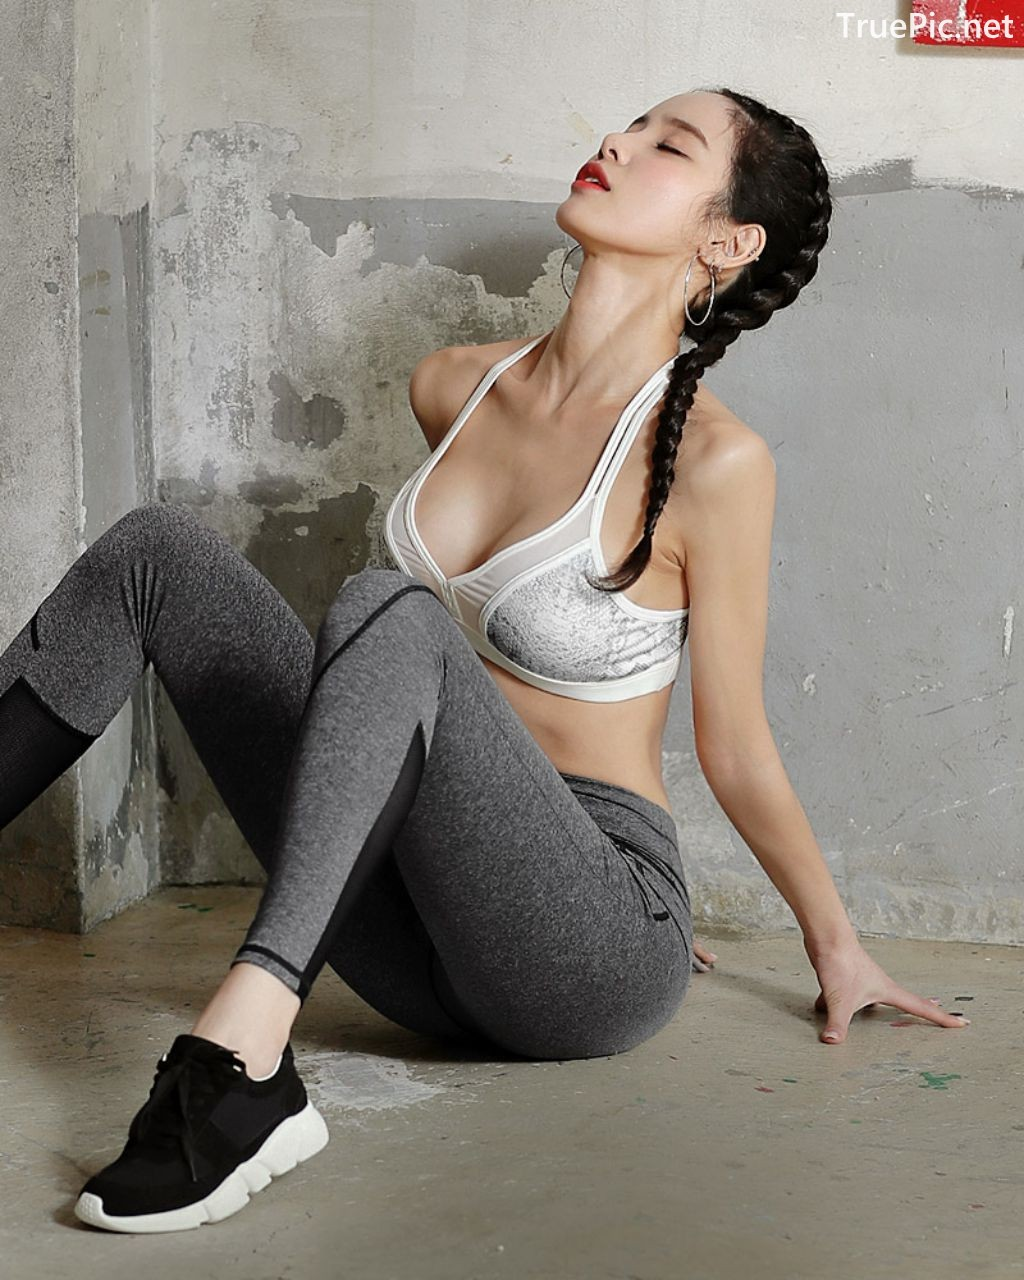 Image-Korean-Fashion-Model-Ju-Woo-Fitness-Set-Collection-TruePic.net- Picture-6